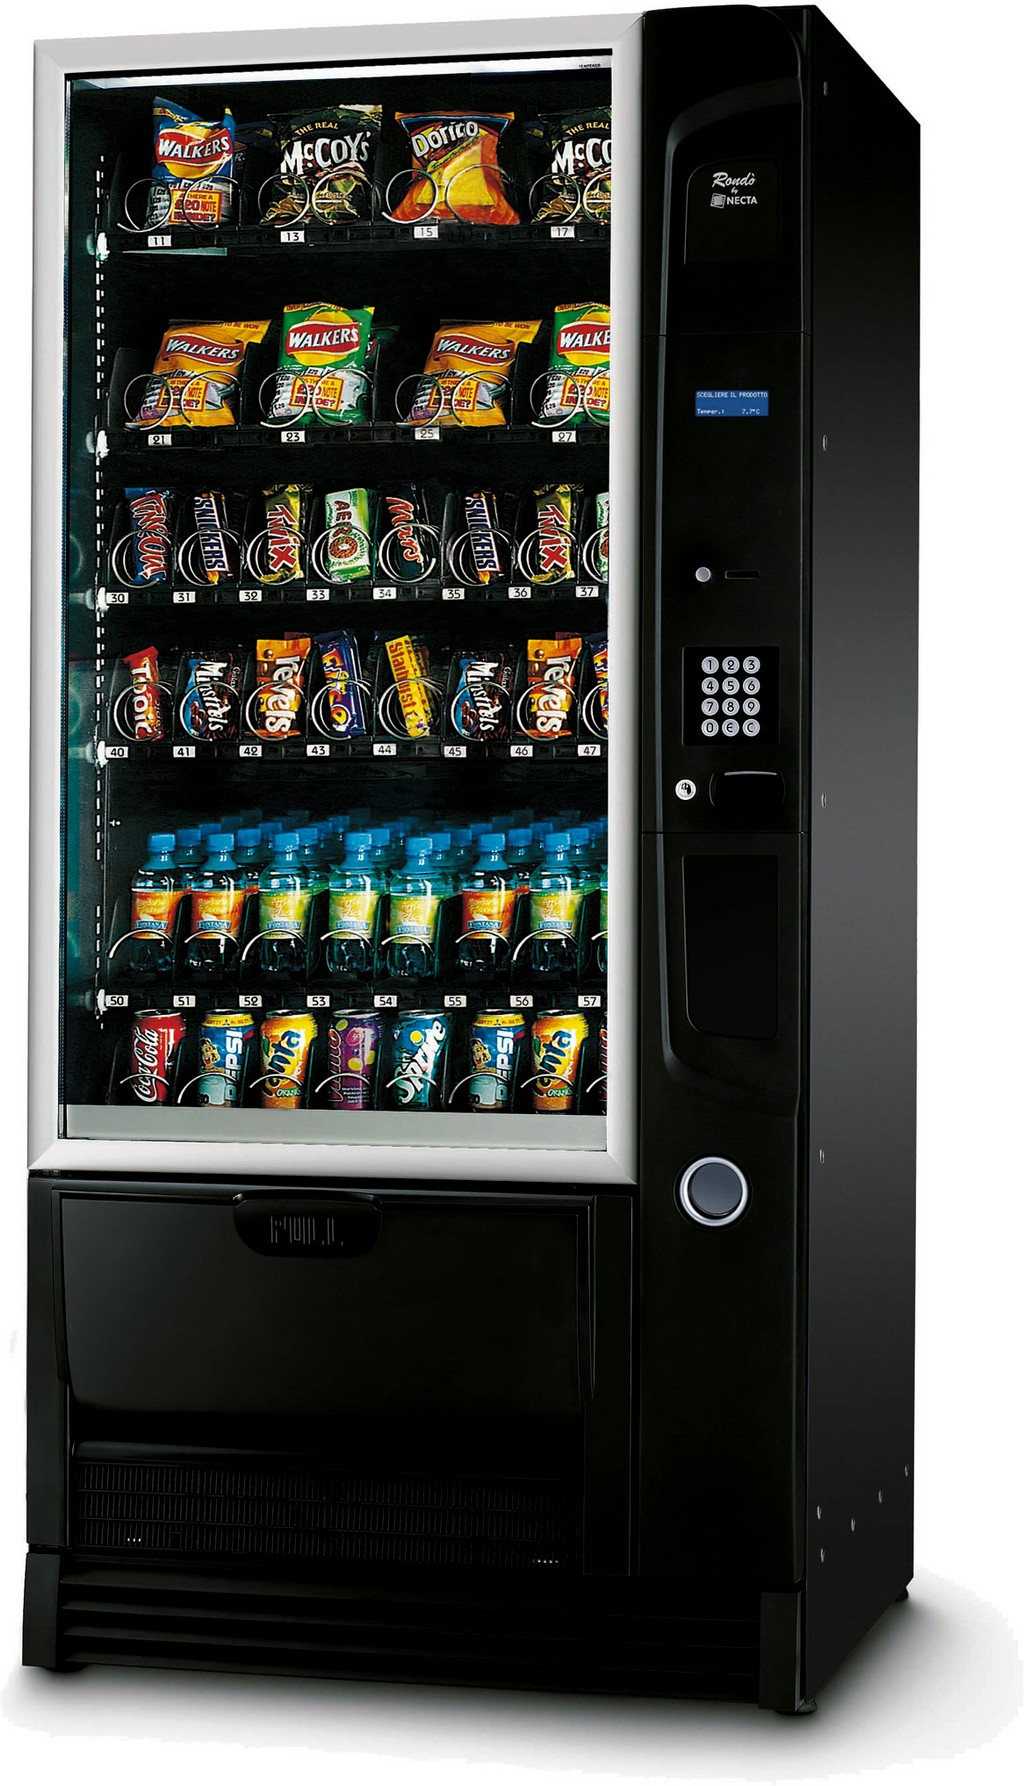 tea vending machine, adamo vending machine, vending machine melbourne